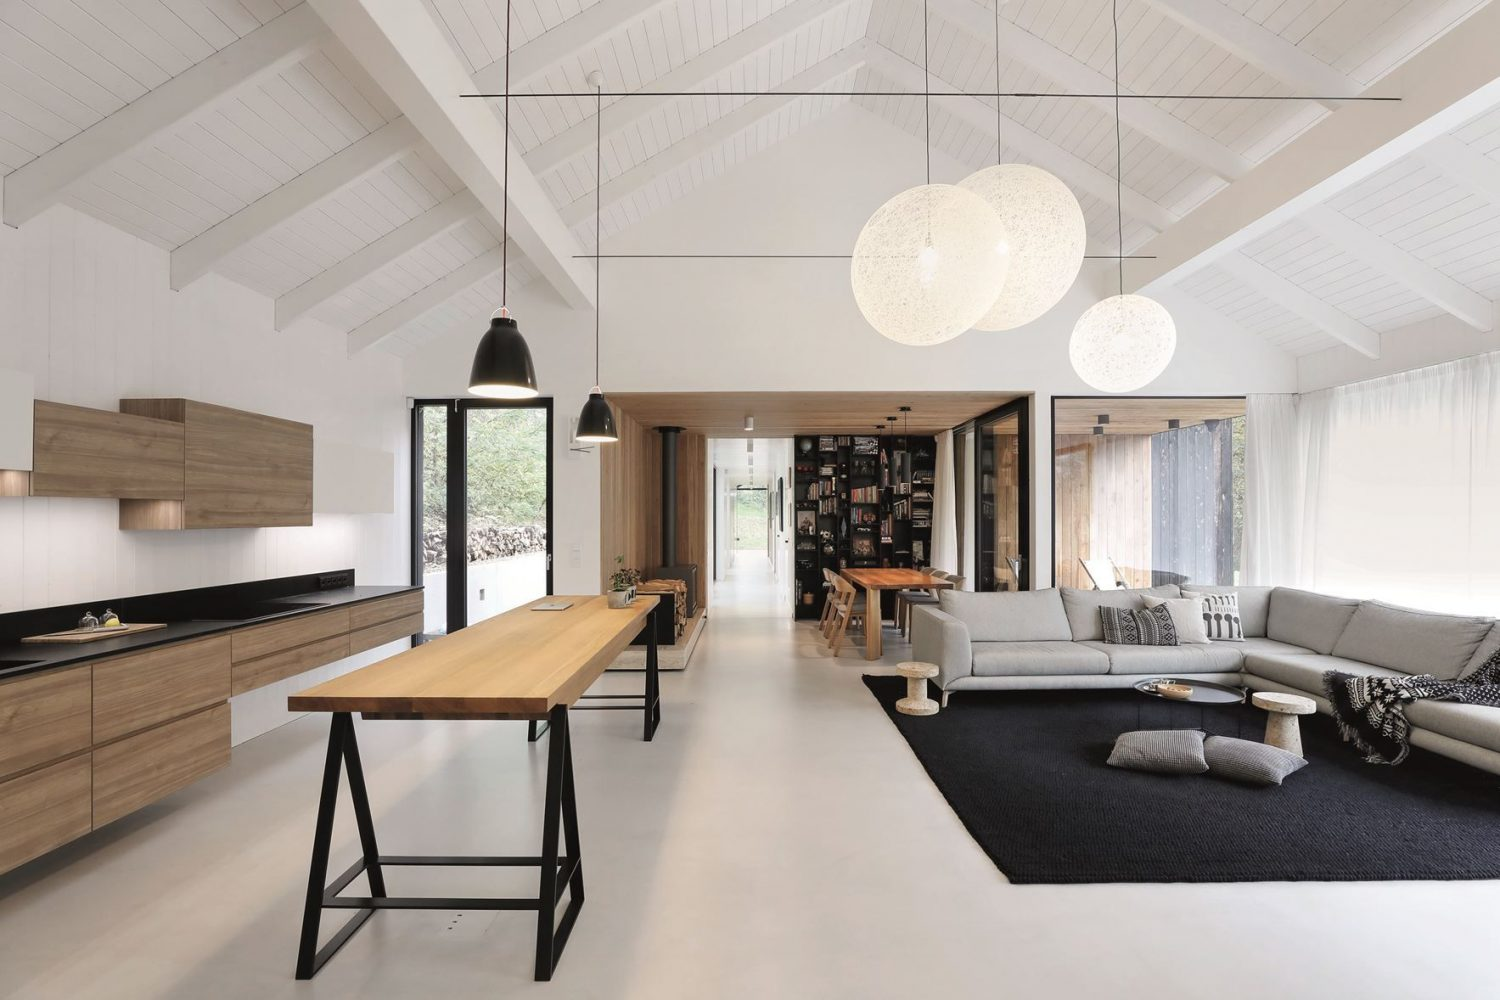 Family House Neveklov by ATELIER KUNC architects